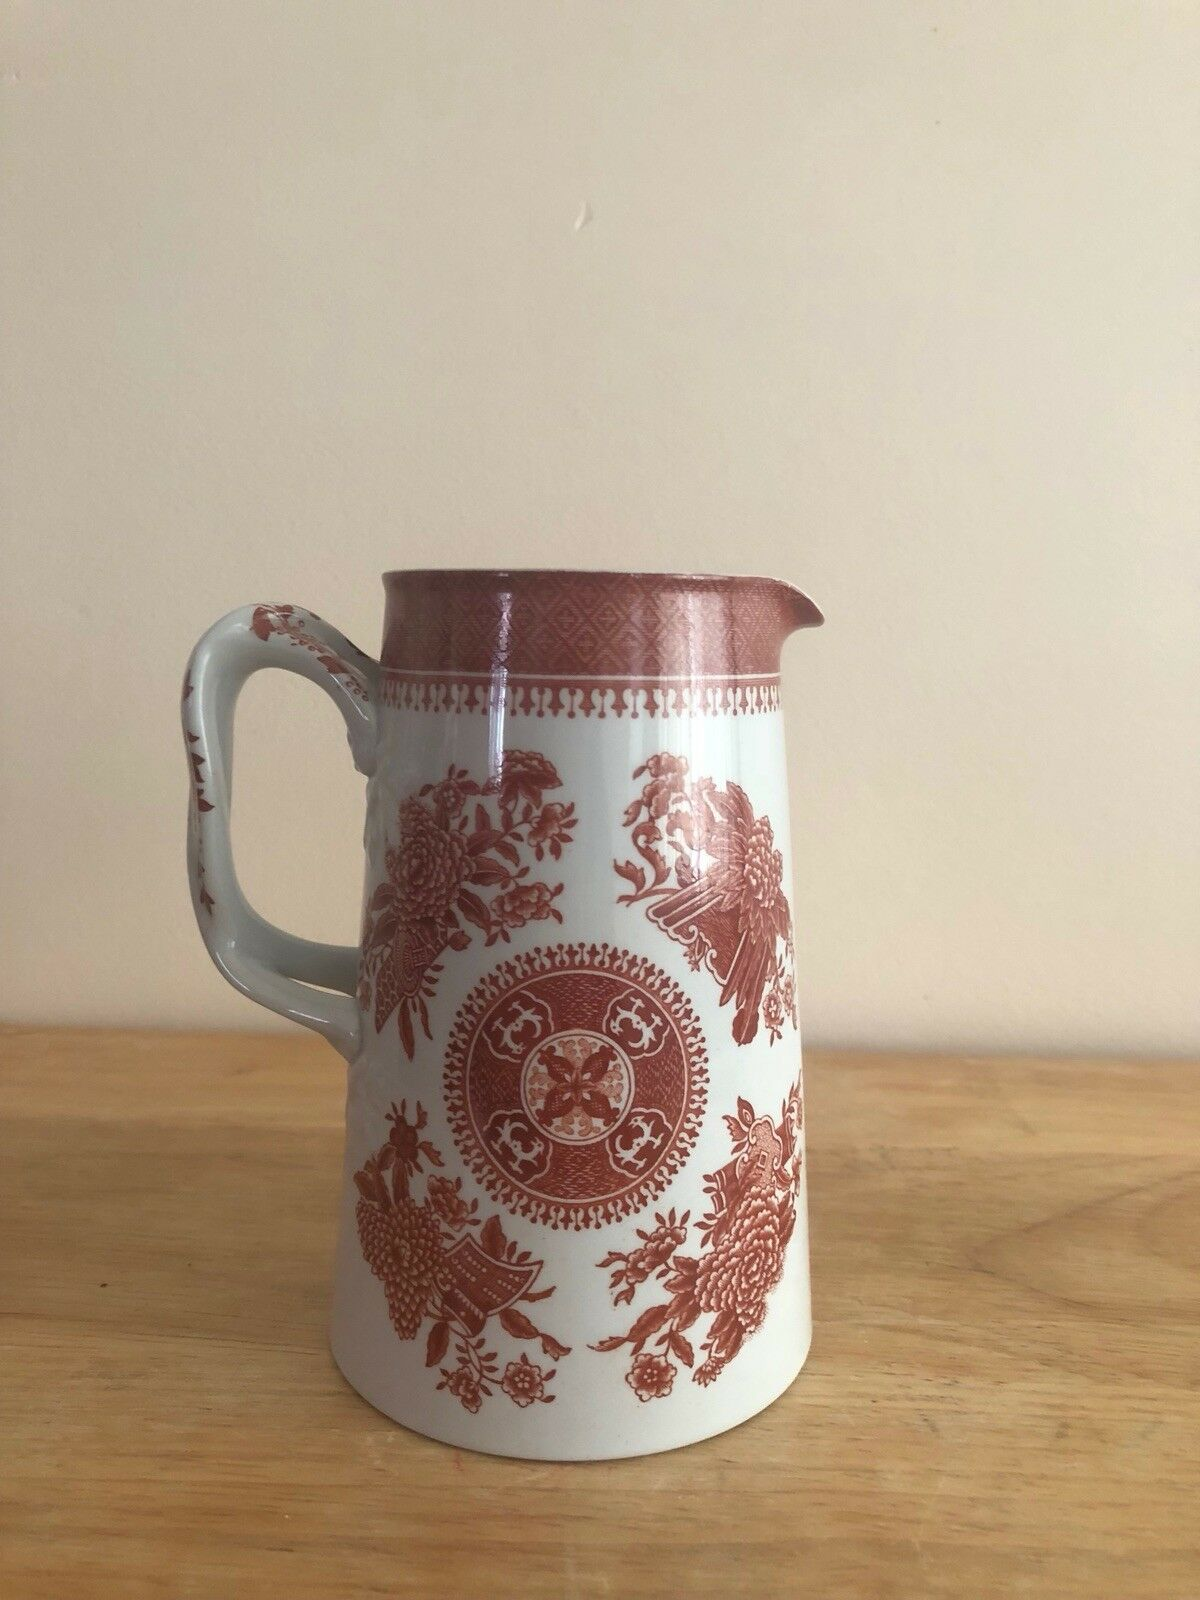 Water pitcher spodes fitzhugh, English, mint condition